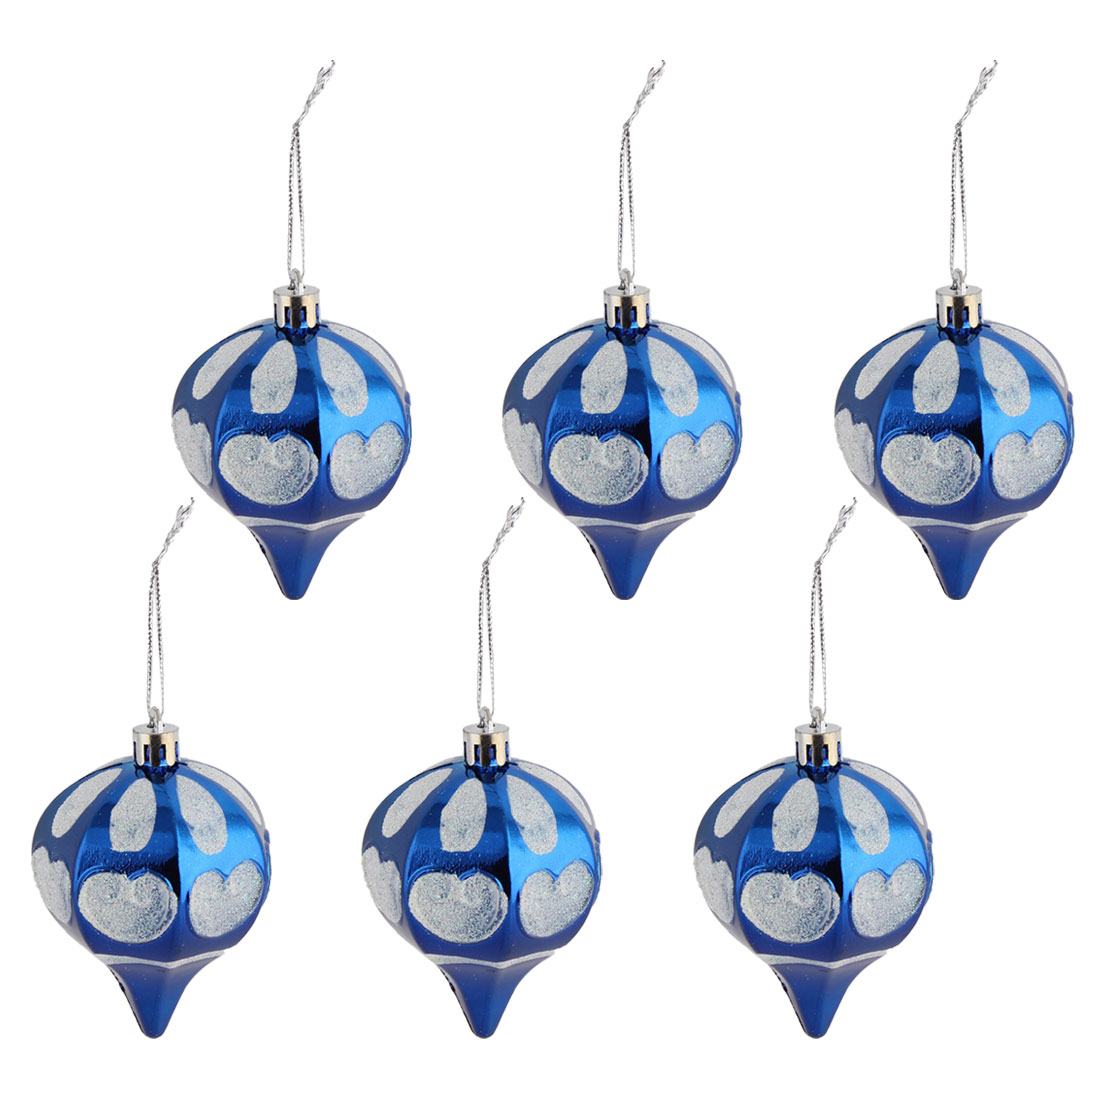 Home Christmas Artificial Collectible Decorations Hanging Baubles Ball Royal Blue 6 PCS